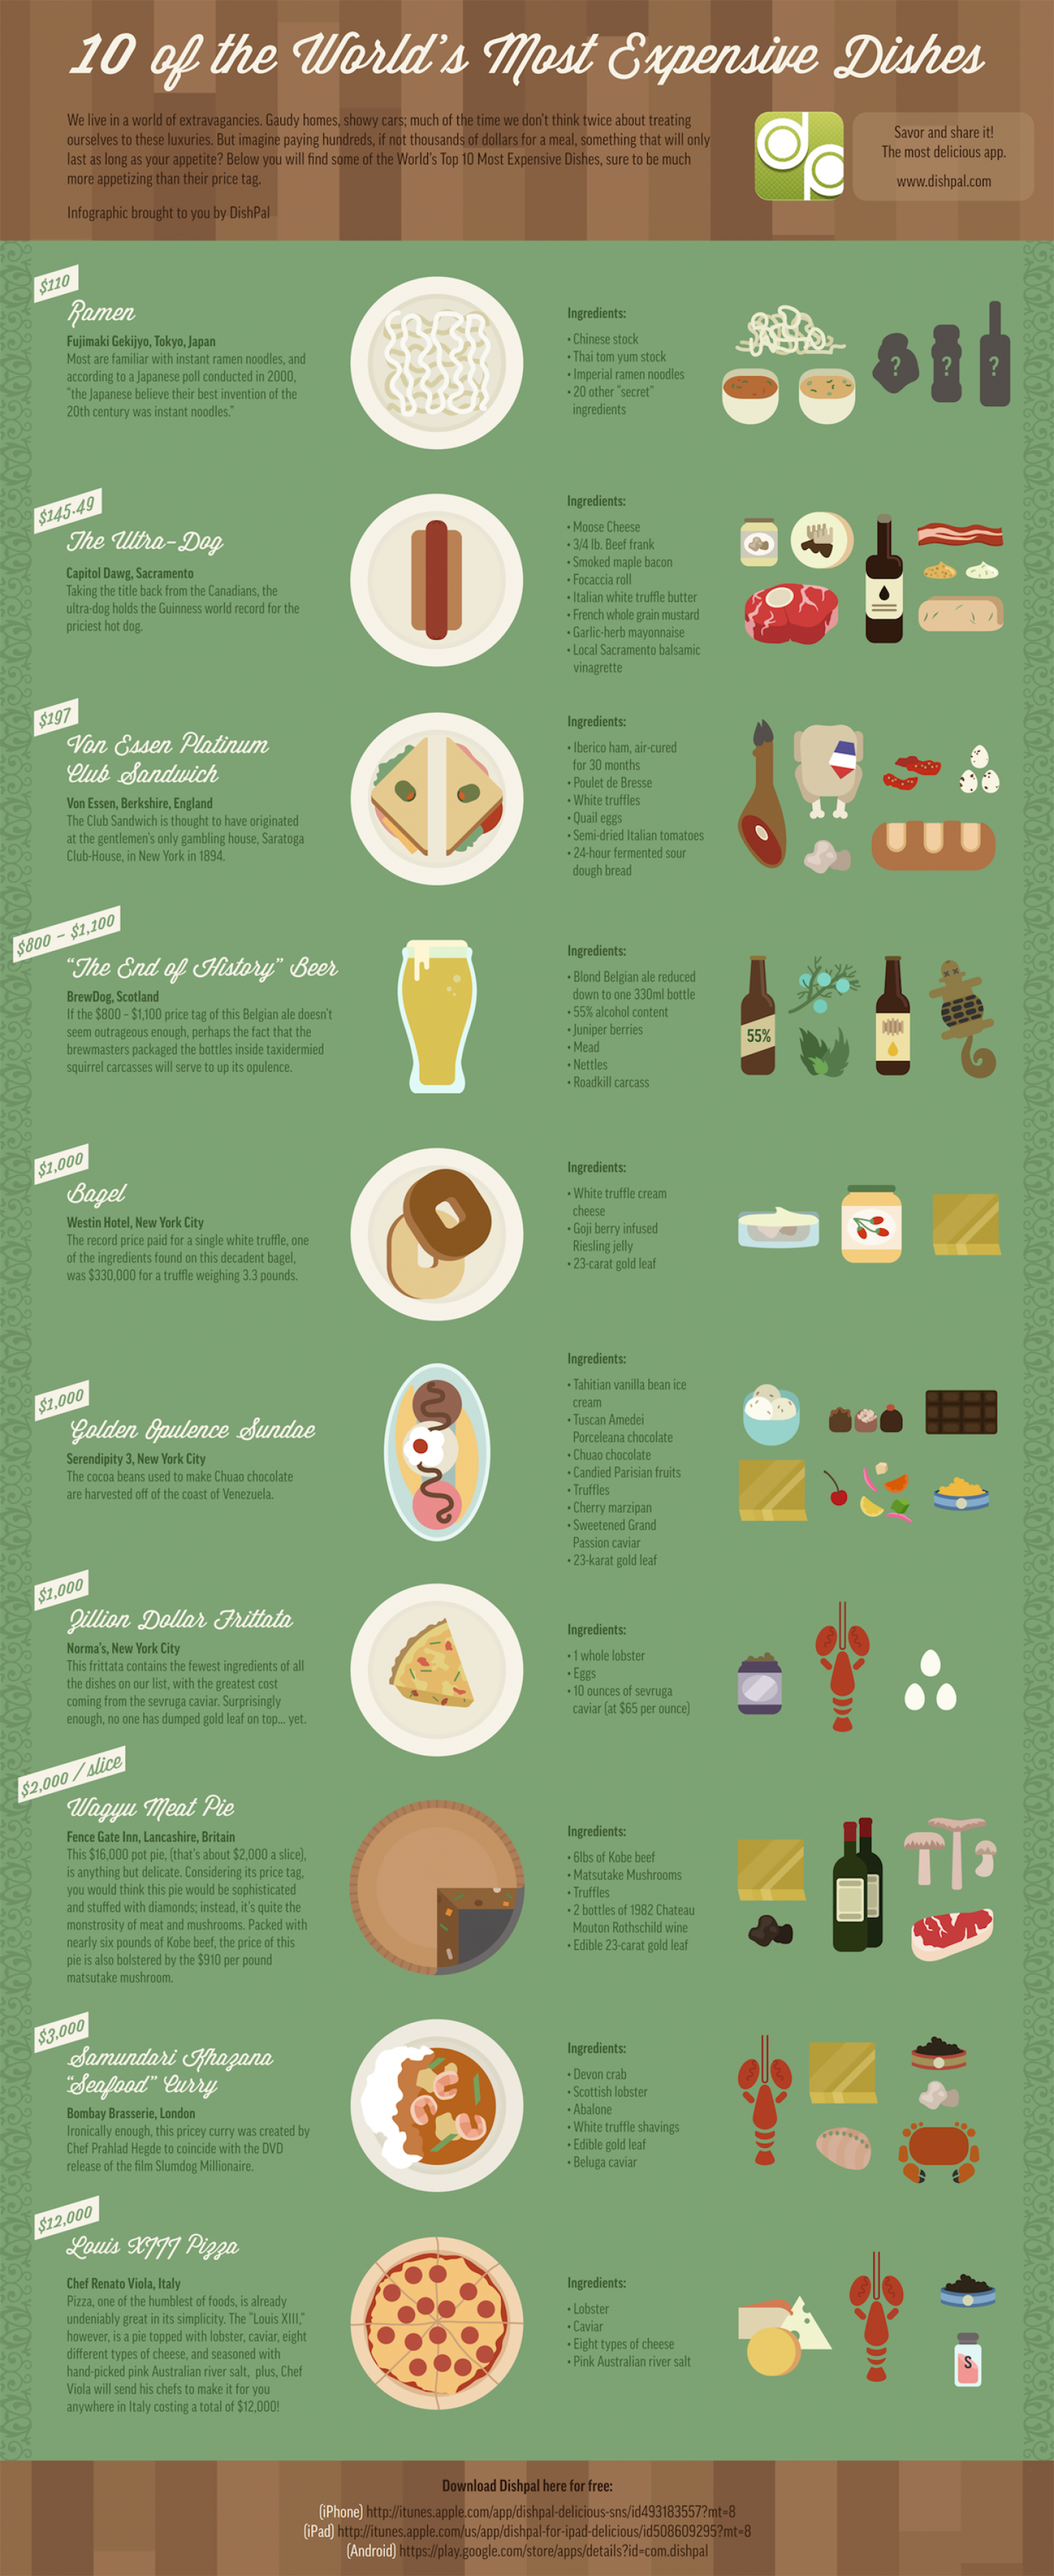 10 of the World's Most Expensive Dishes Infographic